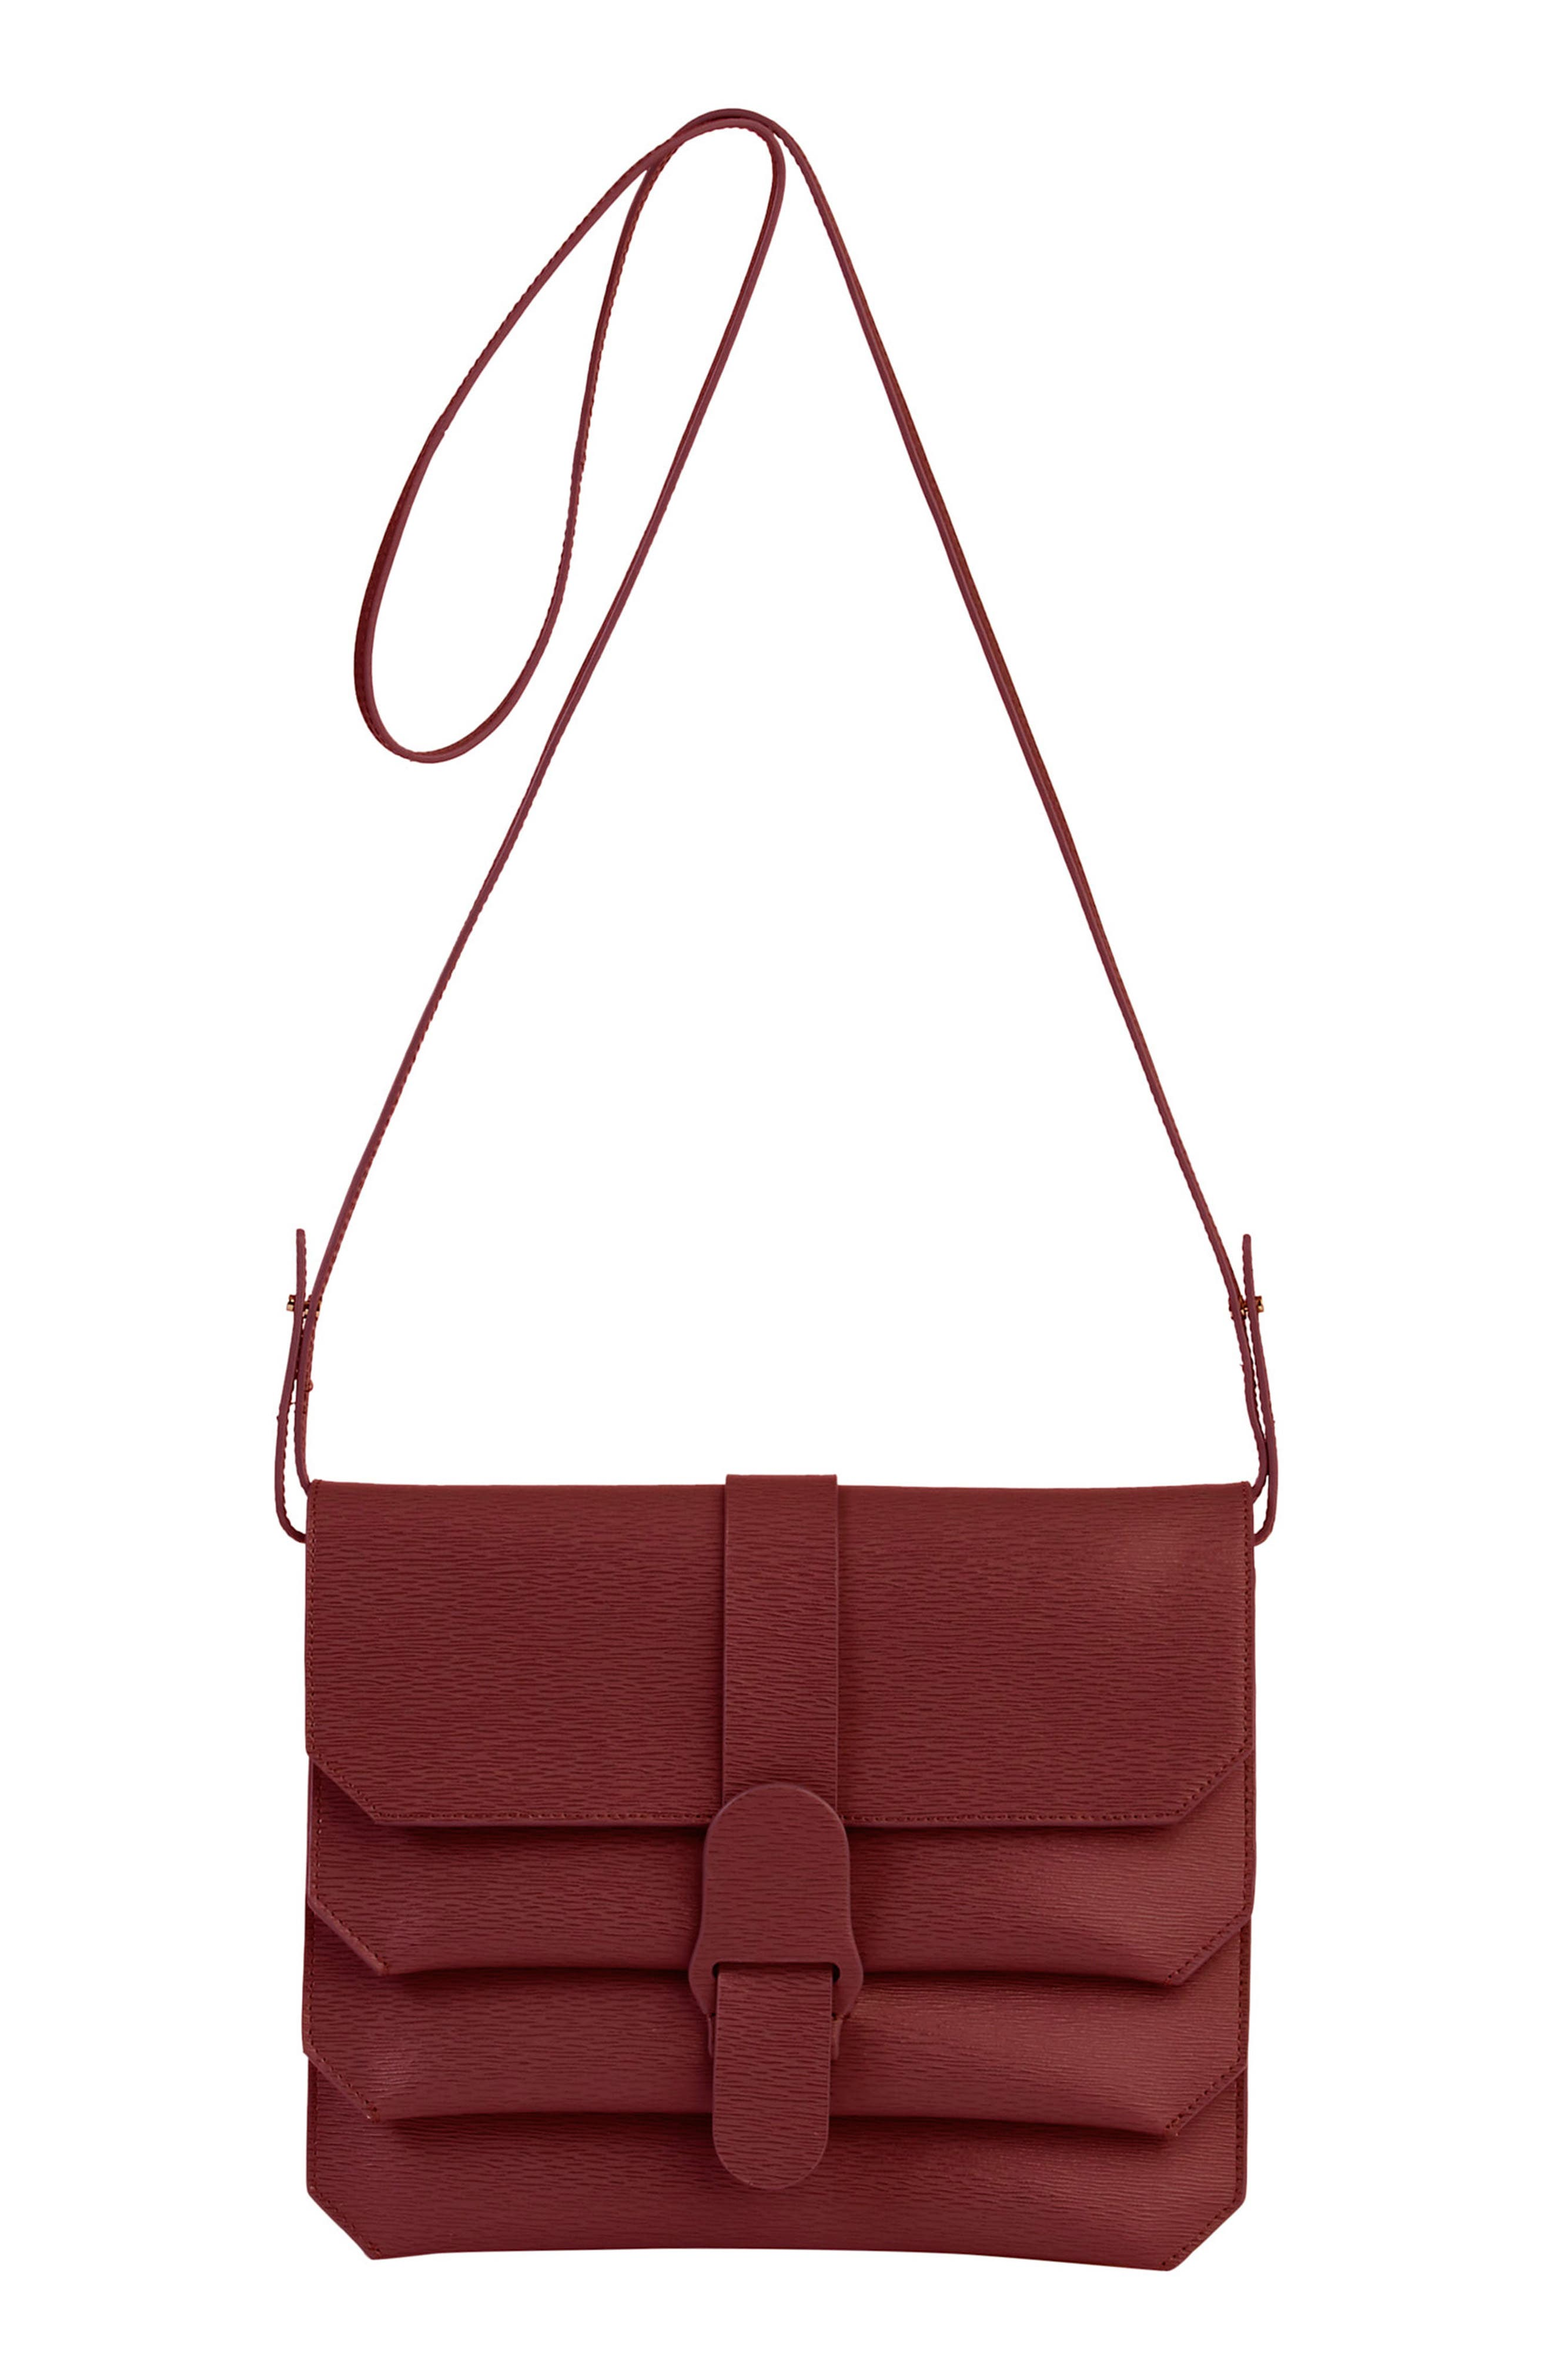 Mimosa Textured Leather Crossbody Bag,                         Main,                         color,